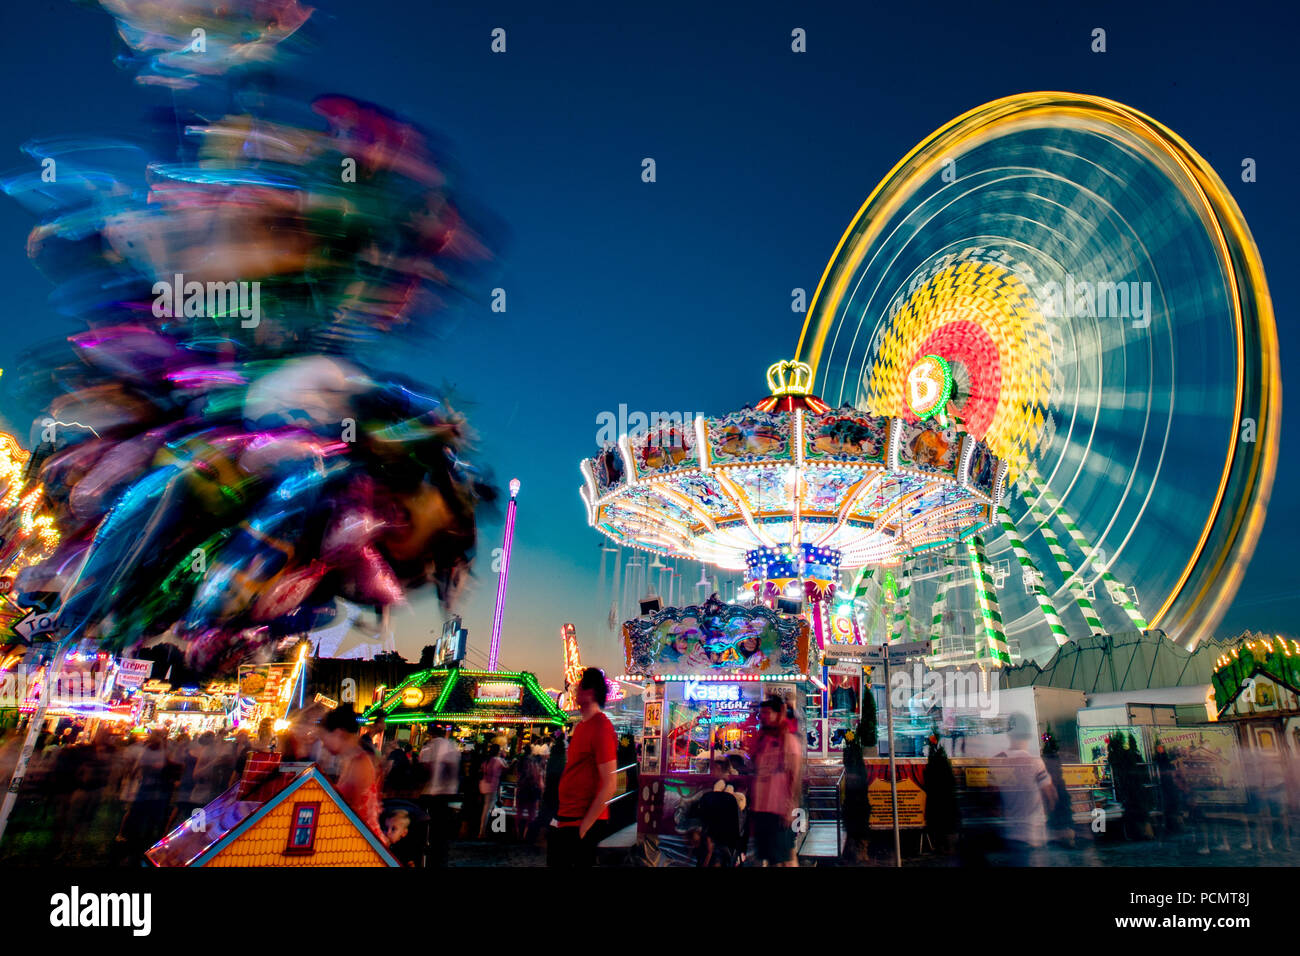 Herne, Germany. 02nd Aug, 2018. A chain carousel rotates at the Cranger Kirmes. (long exposure) The folk festival with around 500 showmen is attended by more than four million people every year and is one of the largest folk festivals in Germany. Credit: Marcel Kusch/dpa/Alamy Live News - Stock Image